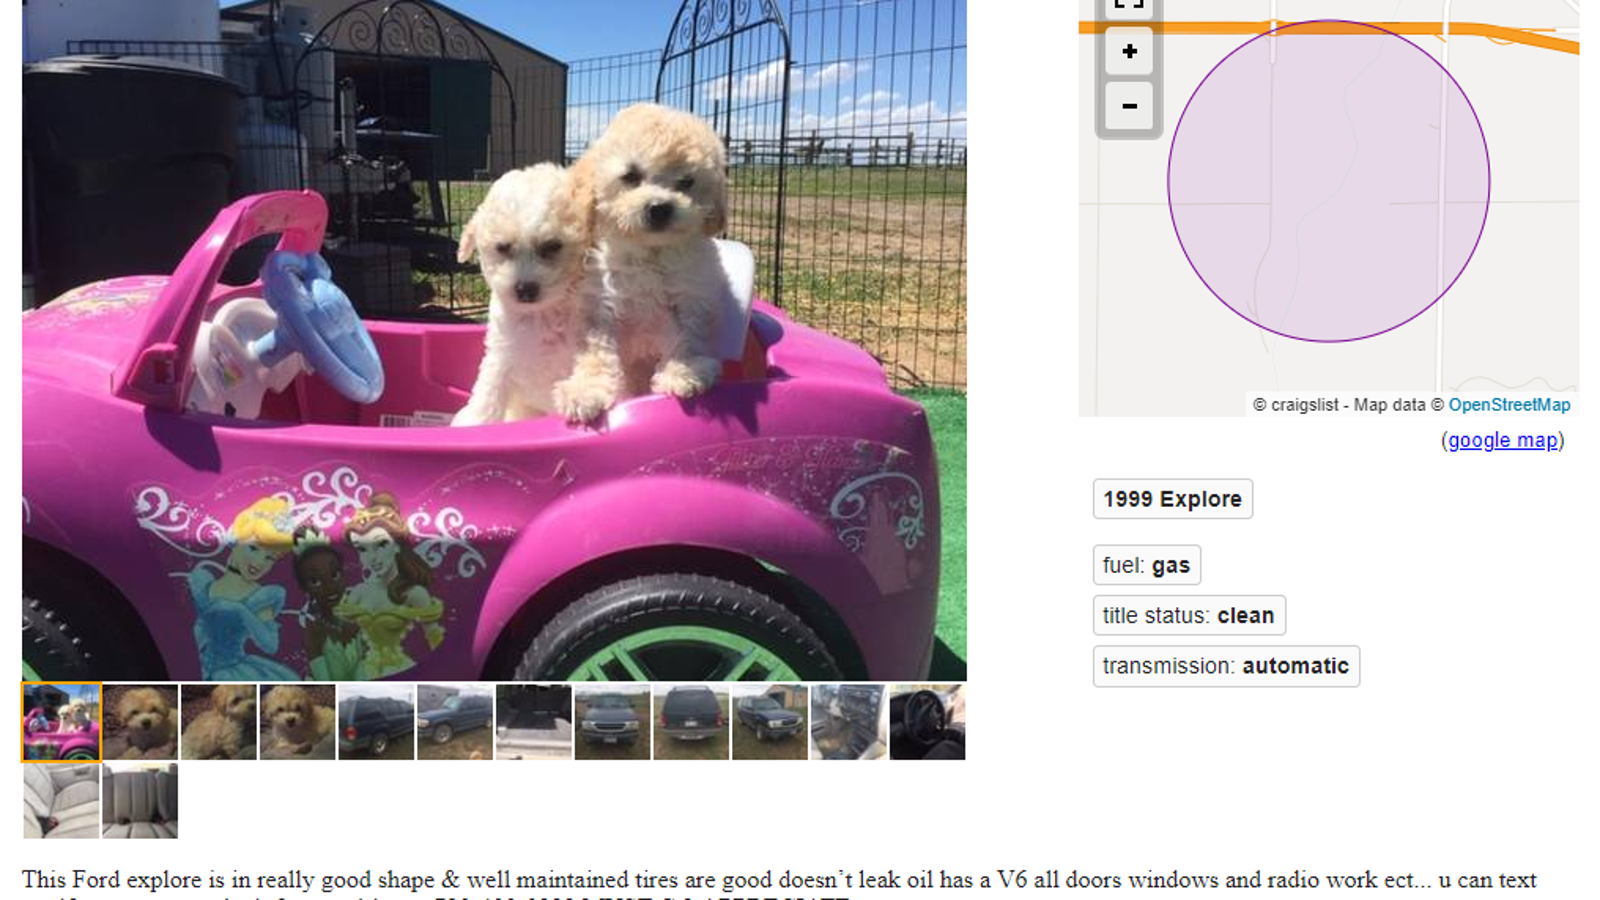 make two separate ads to sell my car and puppy? WHO HAS TIME